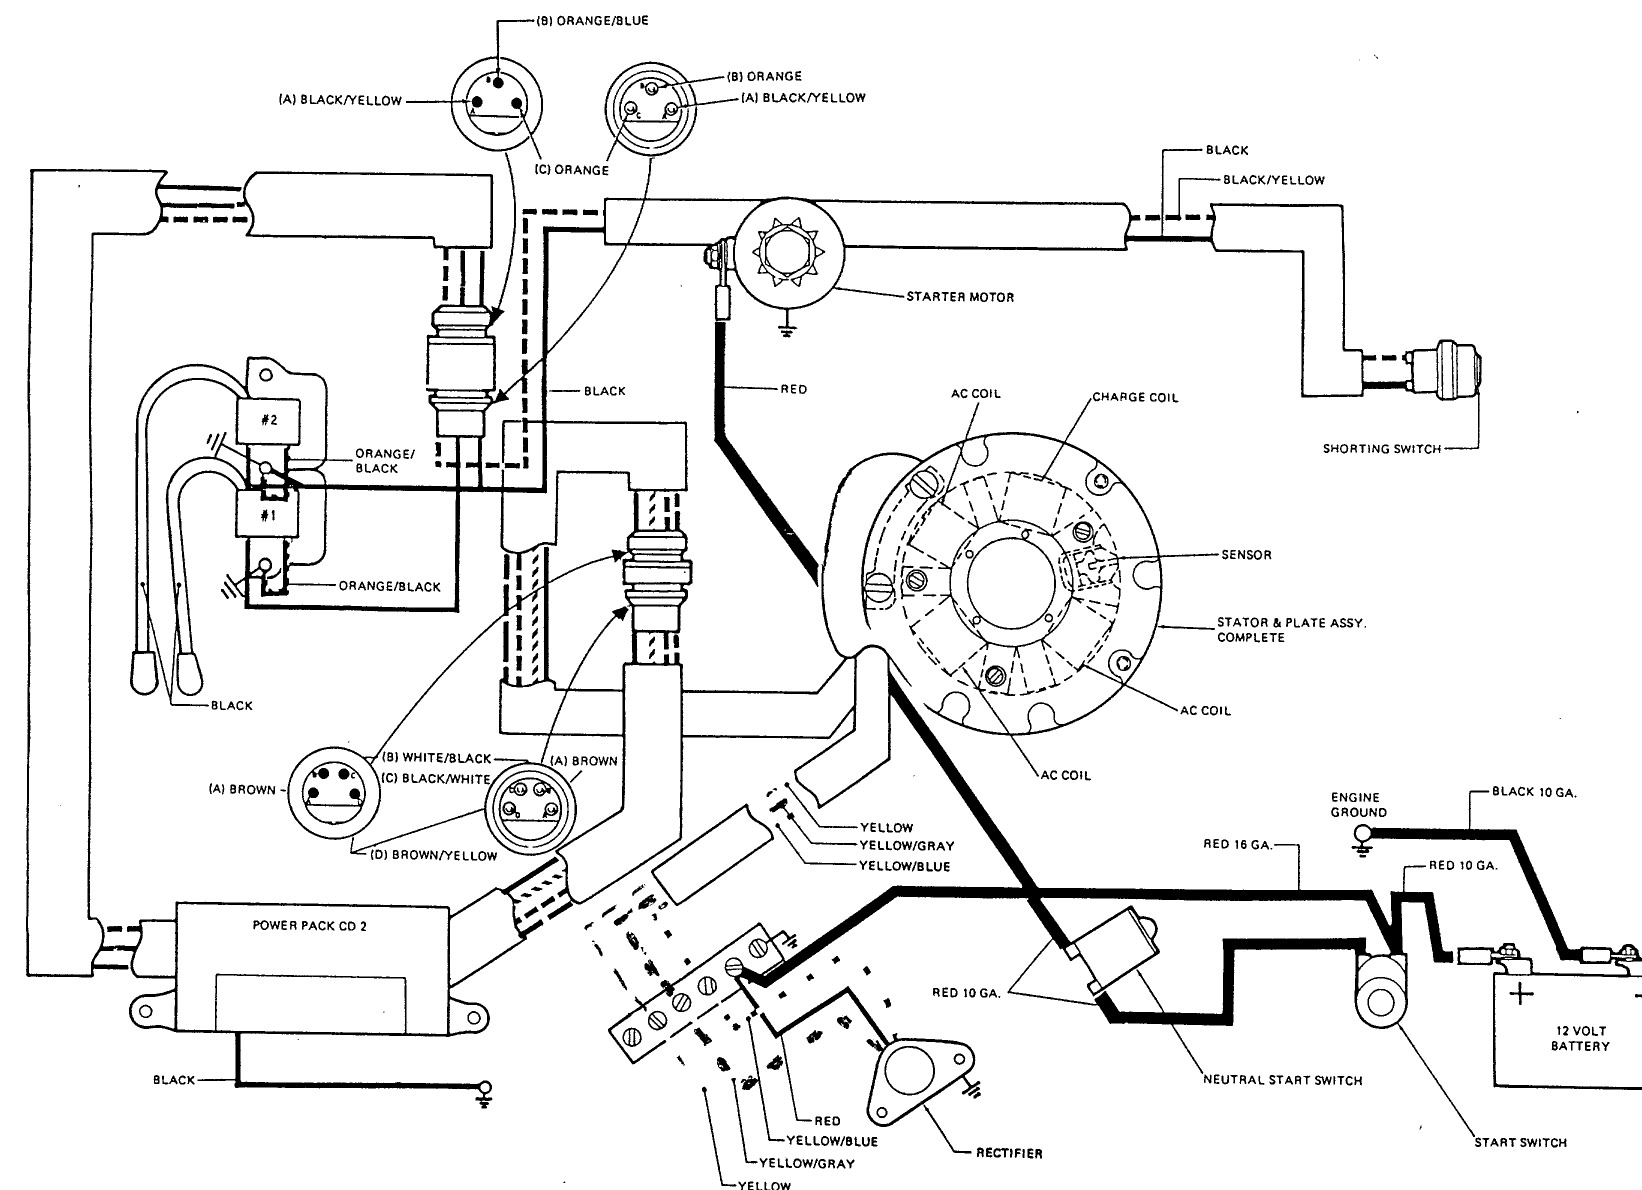 Starter Motor Rectifier And Wiring Harness Electric Only as well MC33374 switching power supply circuit diagram 19428 furthermore F18 together with Johnson troubleshooting further 11753 Ignition Switch Wiring For 316. on yamaha rectifier regulator wiring diagram